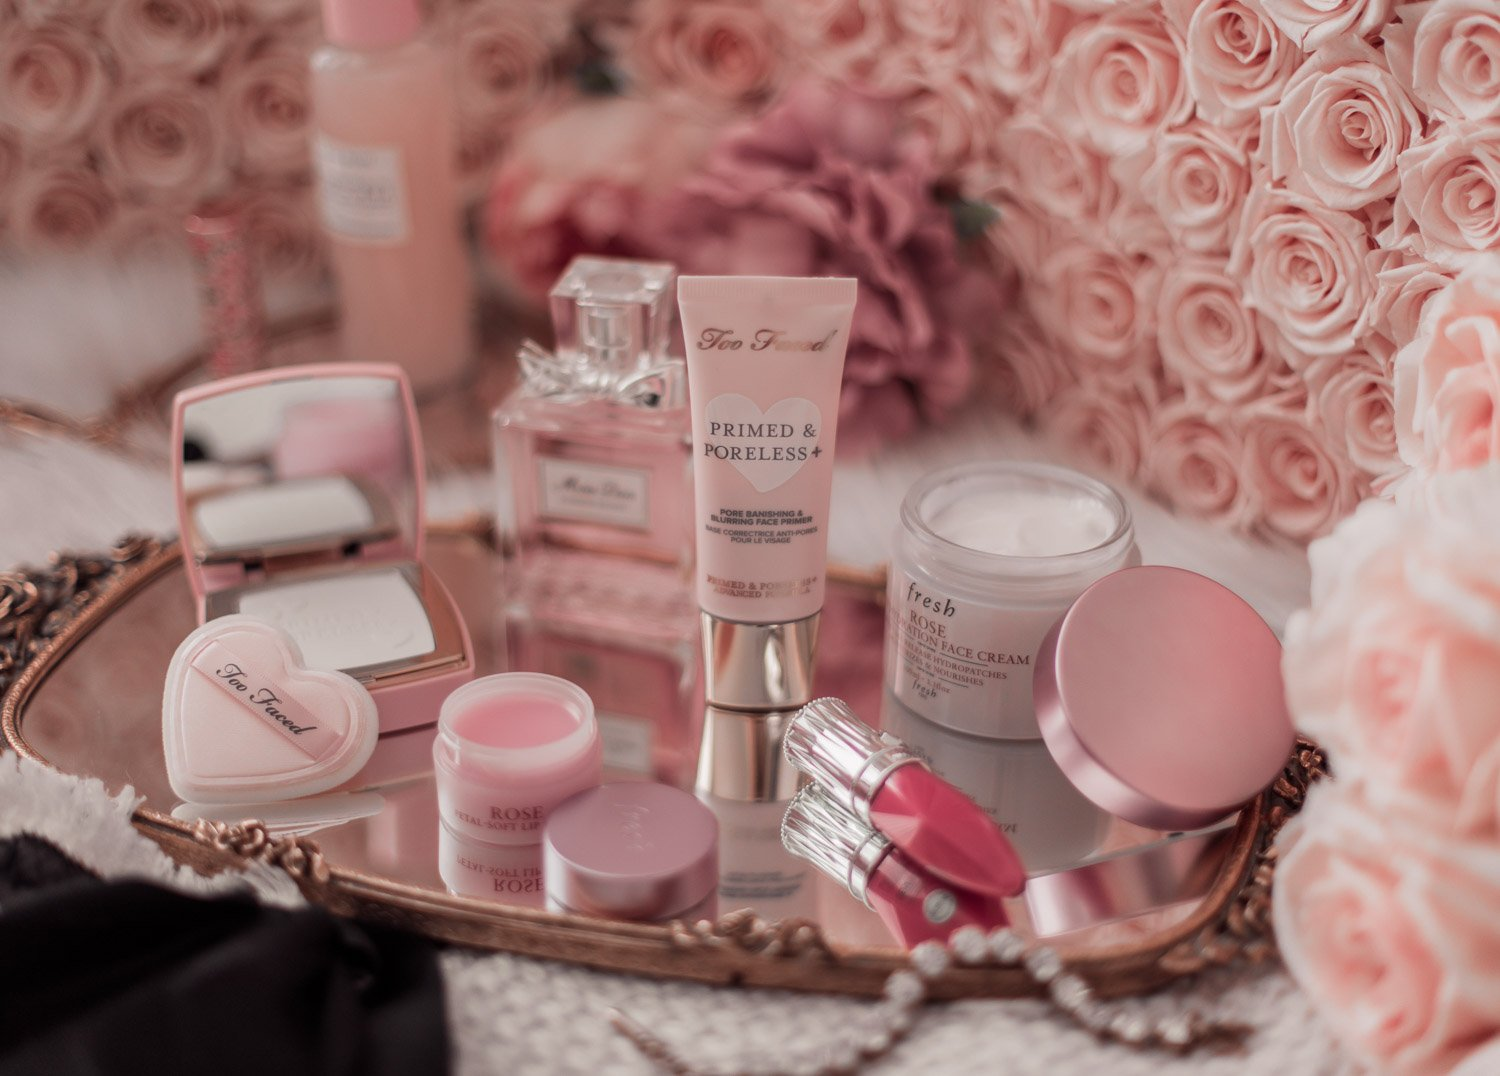 Elizabeth Hugen of Lizzie in Lace shares her must-have pink beauty products including Too Faced primed and poreless